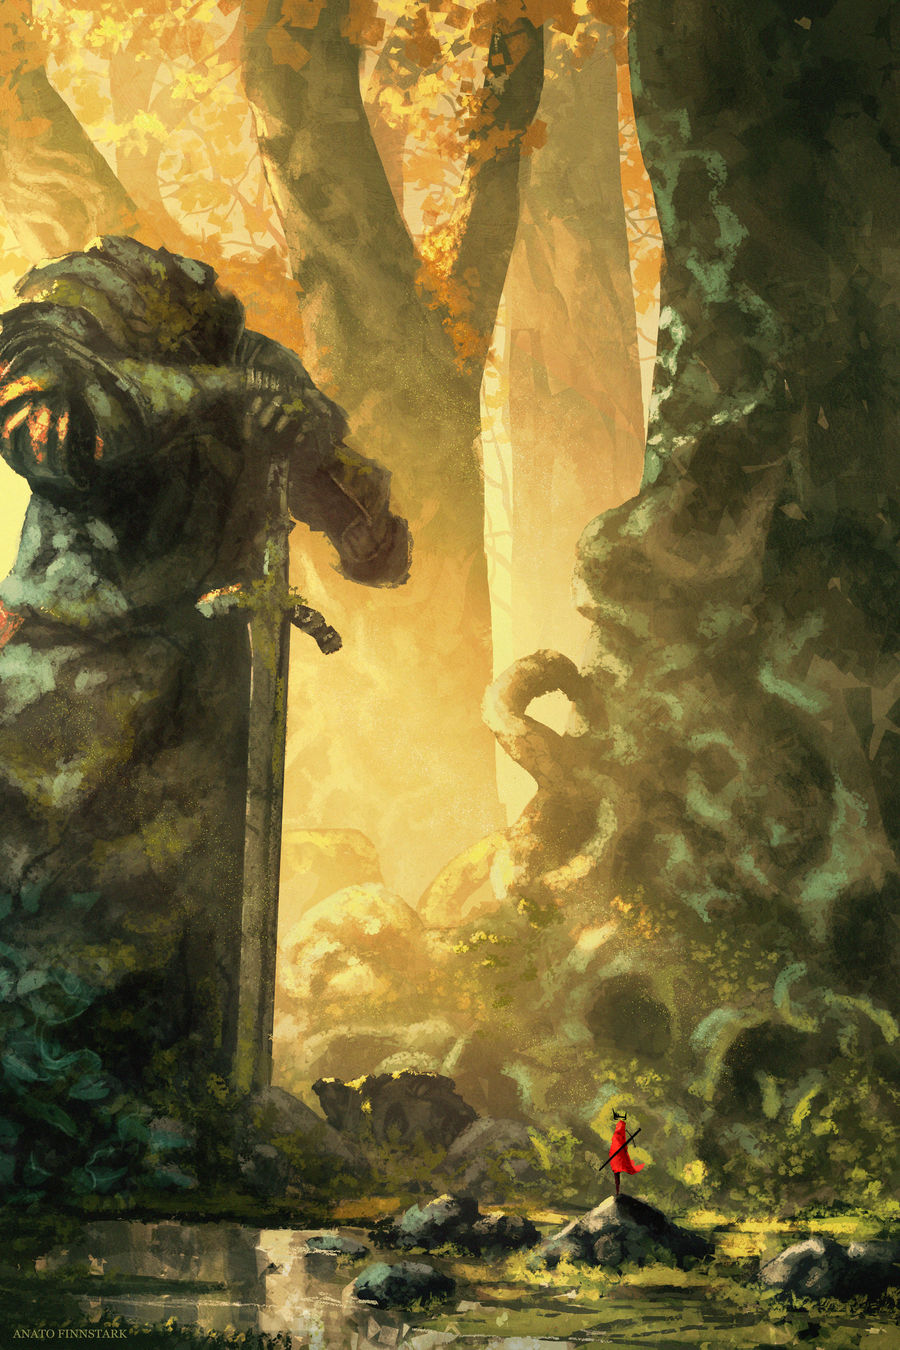 the_king_s_journey___lord_of_the_lost_by_anatofinnstark_dd2zf7d-fullview-1